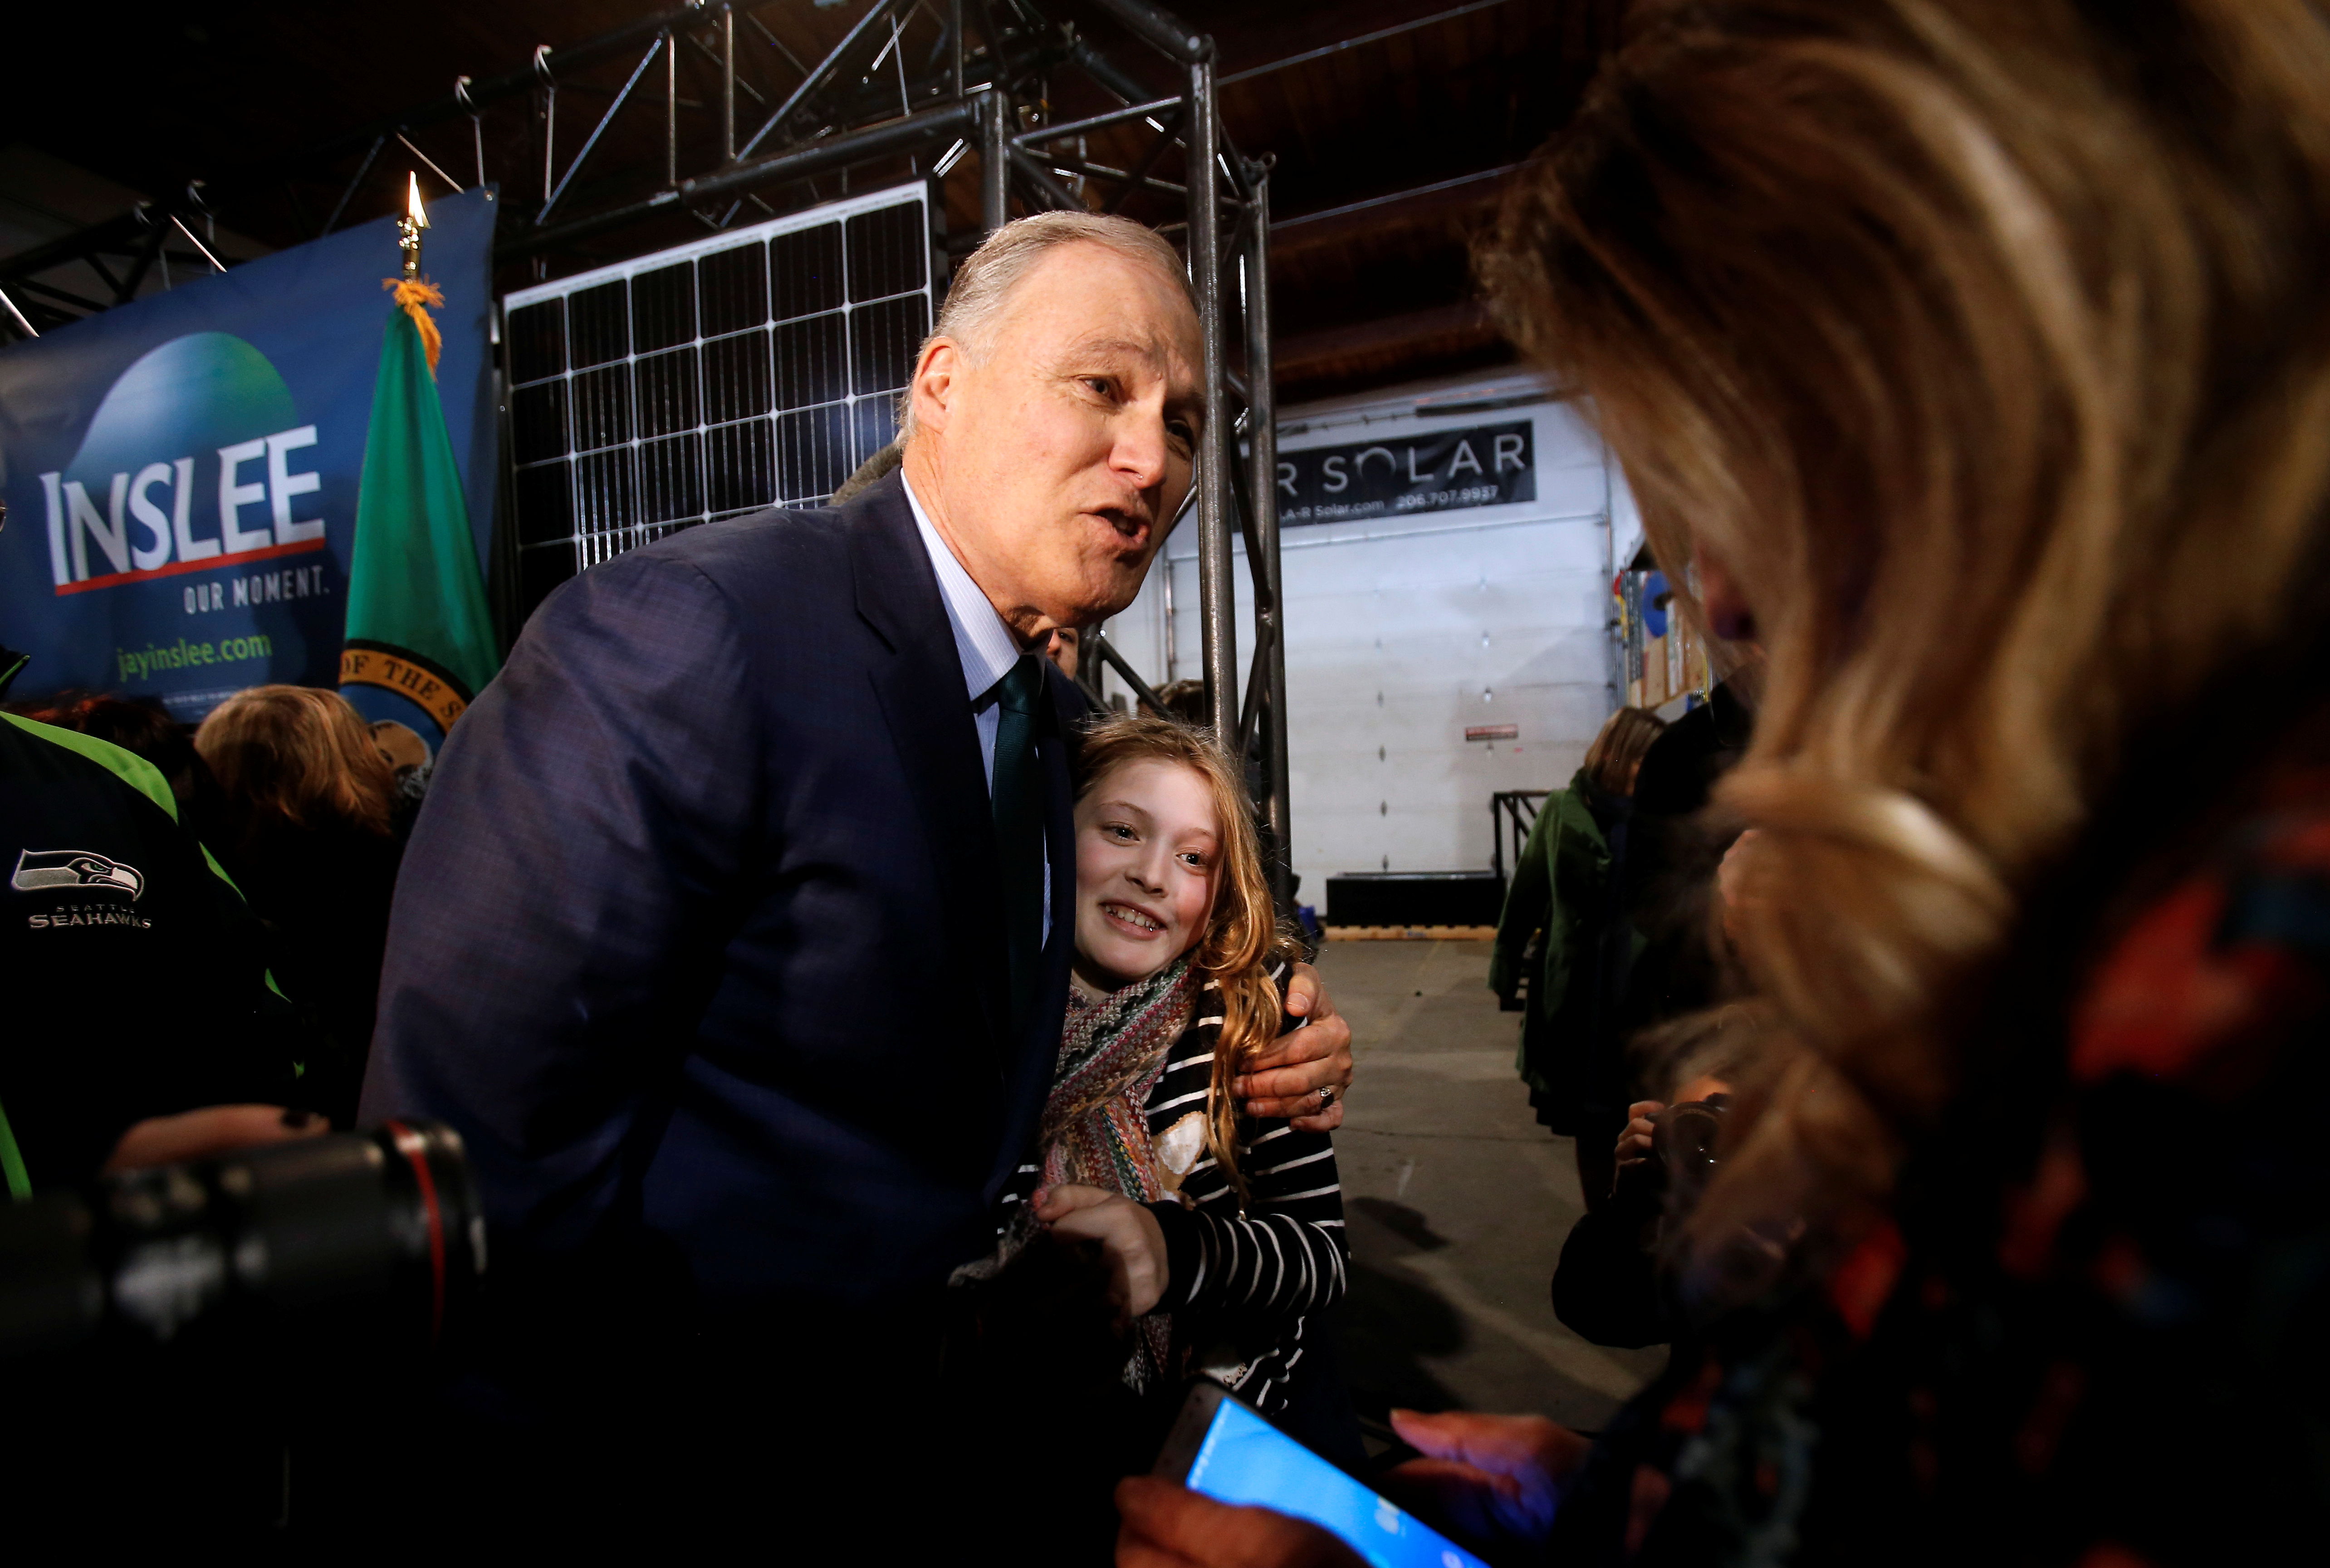 Washington state Governor Jay Inslee hugs Noreus, 11, of Redmond, Washington during a news conference to announce his decision to seek the Democratic Party's nomination for president in 2020 at A&R Solar in Seattle